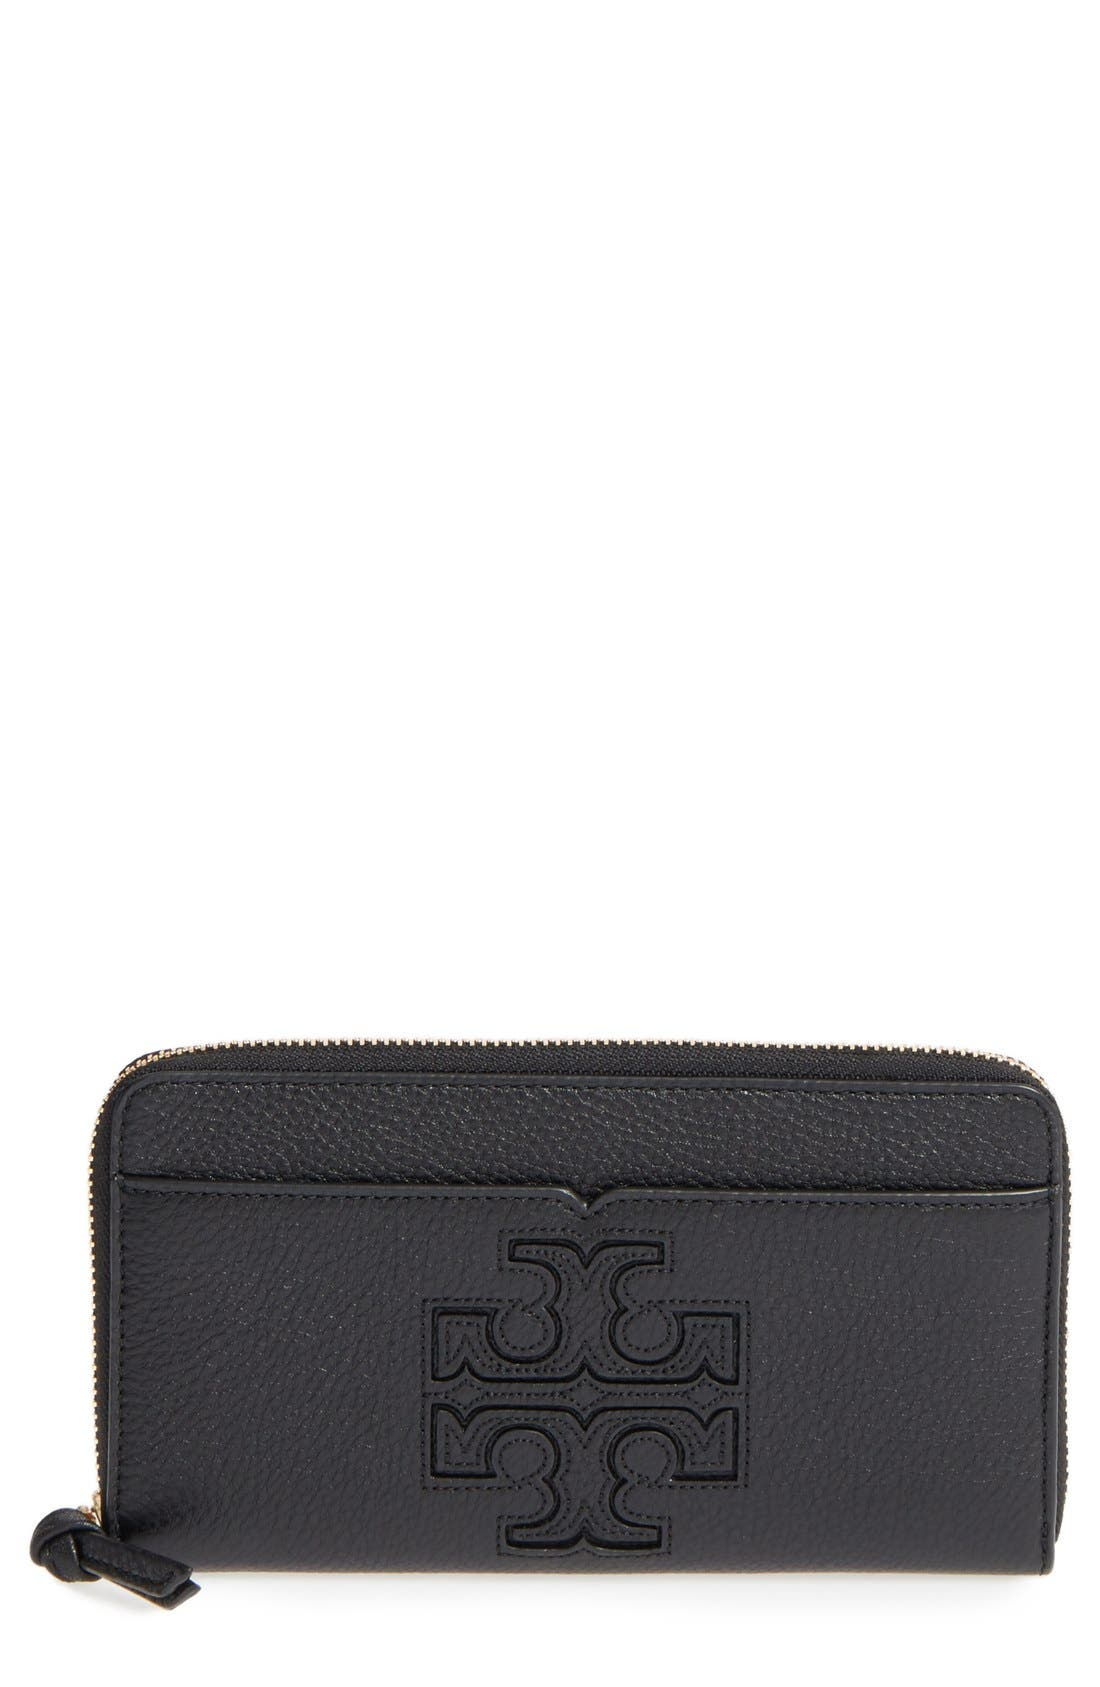 Main Image - Tory Burch 'Harper' Leather Zip Continental Wallet